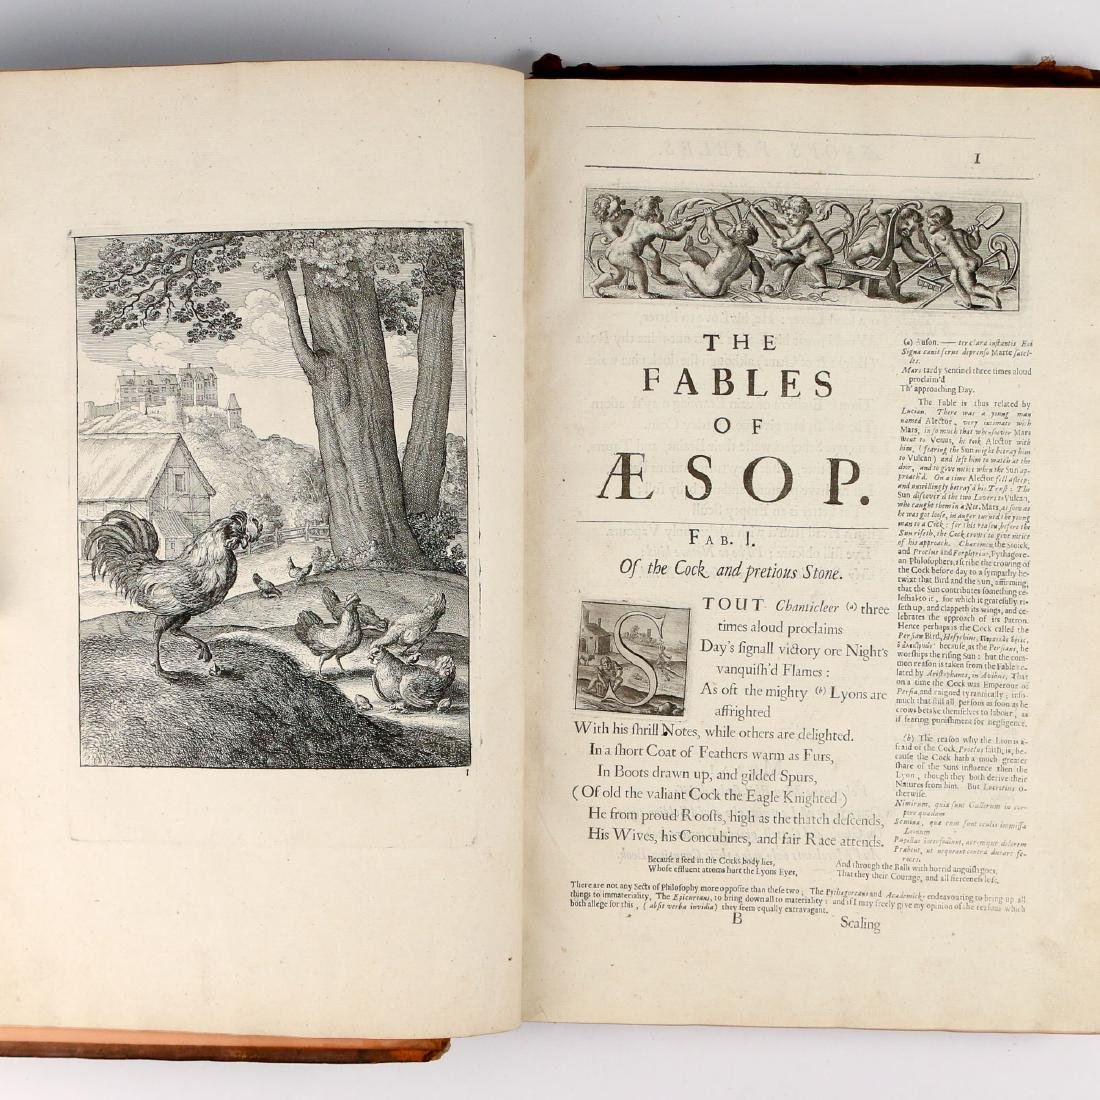 AESOP'S FABLES [FIRST FOLIO EDITION, 1665]